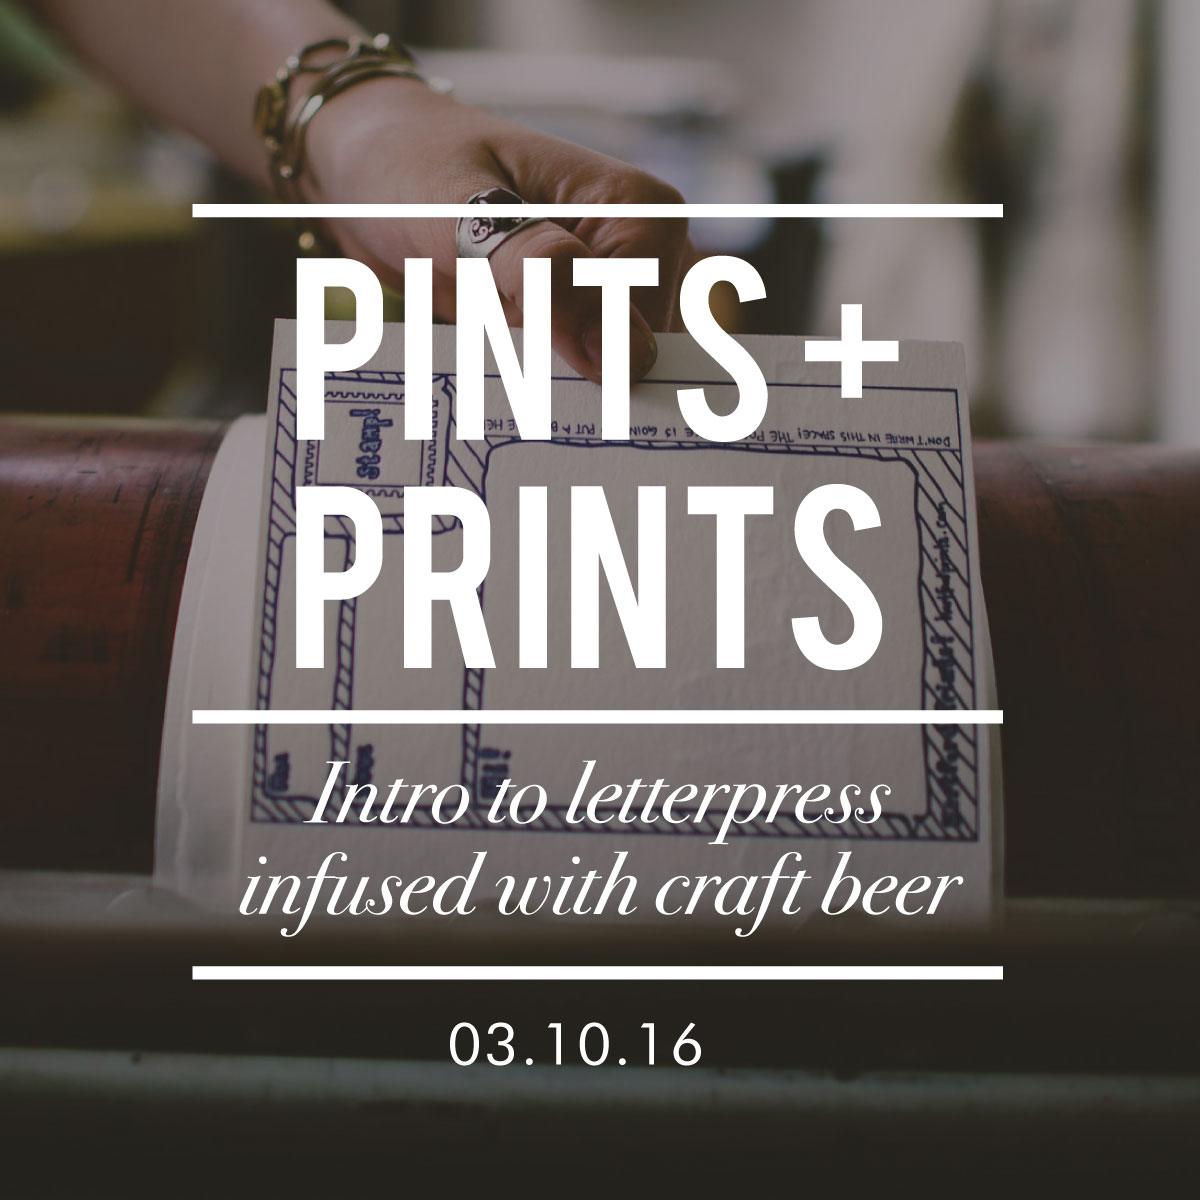 http://hartfordprints.com/shop/pints-prints-intro-letterpress-infused-craft-beer/